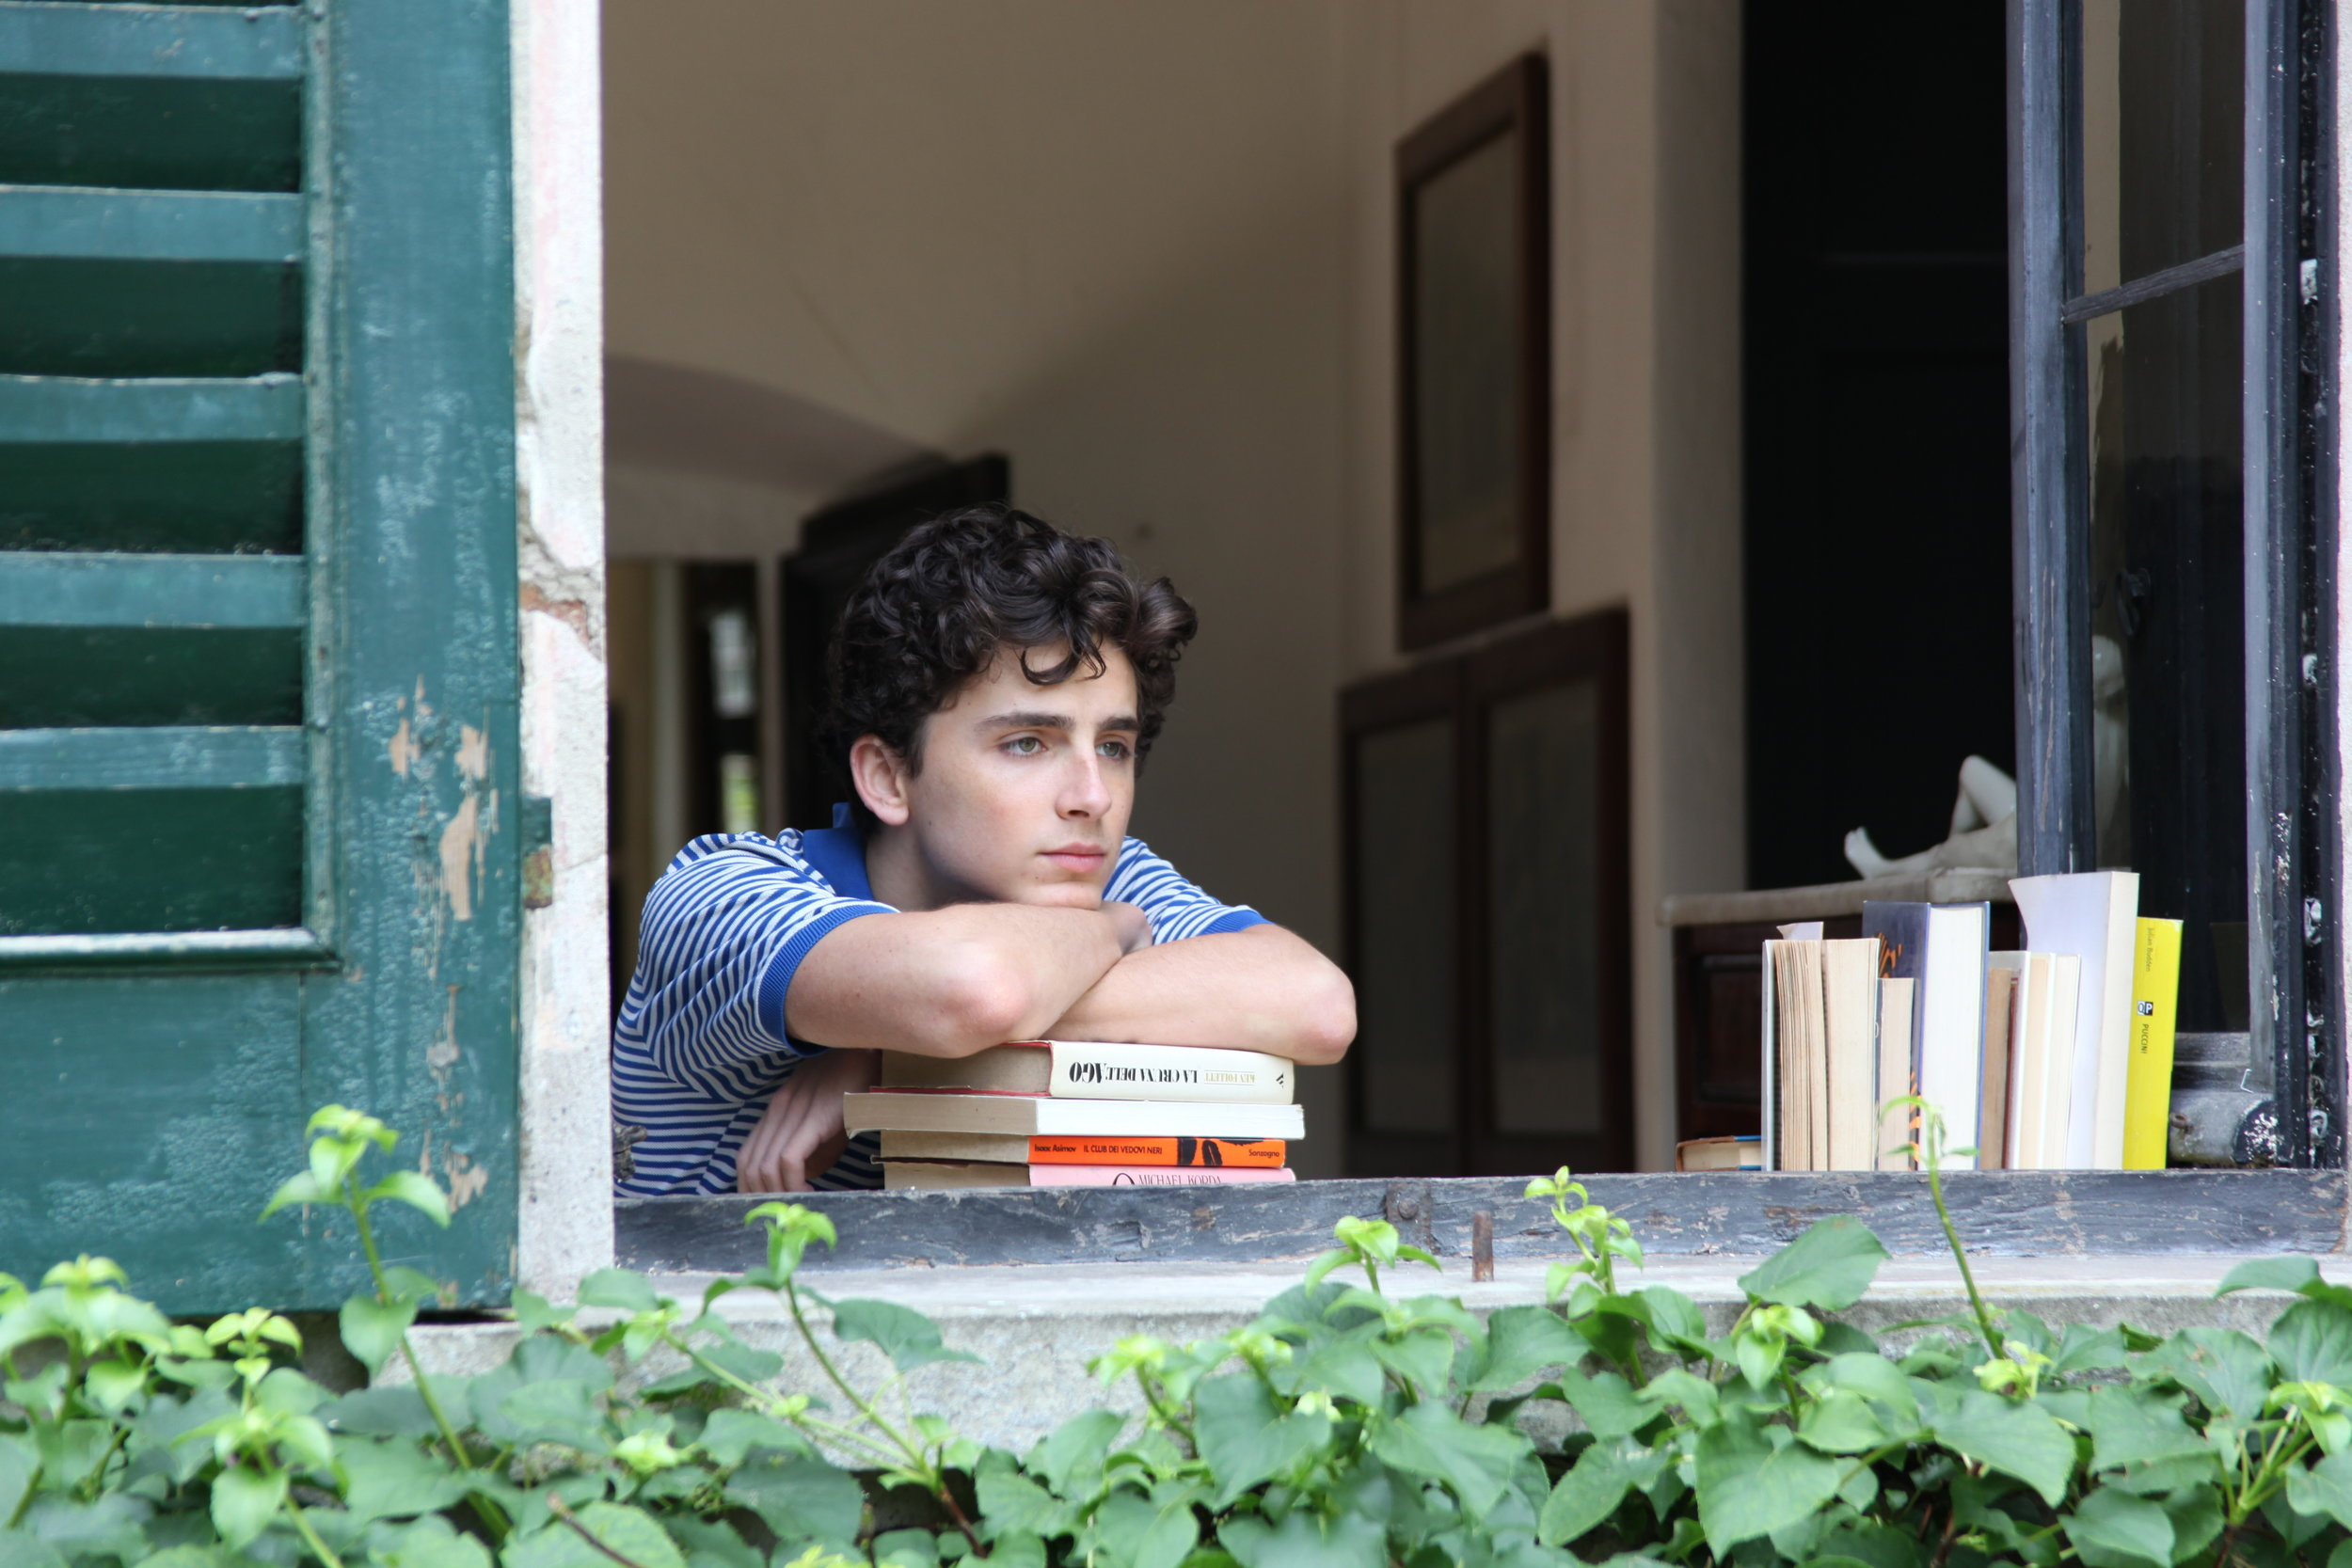 "3. TIMOTHÉE CHALAMET | Elio | CALL ME BY YOUR NAME   ""It's tough because within the context of the story this character plays all his cards and reveals his hand to the person of interest. And in this universe, it so happens the person of interest is feeling the same things. It's tough to apply that in one's own life because of the very real phenomenon of rejection. But I love the idea that young guys—particularly Americans because I feel the mental health dialogue is less repressed in Europe the way it is here—will see this movie and see there's nothing wrong with being themselves. There's nothing wrong with opening up and playing your cards. In fact, sometimes it can be an attractive and beautiful thing.   (On his potential Oscar chances):  ""What this movie's been already is so above and beyond I think any of our wildest dreams. The experience of getting to shoot it was the main appeal. And the reception it's been getting is above and beyond our wildest dreams, anything beyond that would be greatly appreciated too, but I'm really trying not to think about that too much."" -  Newsweek Magazine, November 24, 2017"